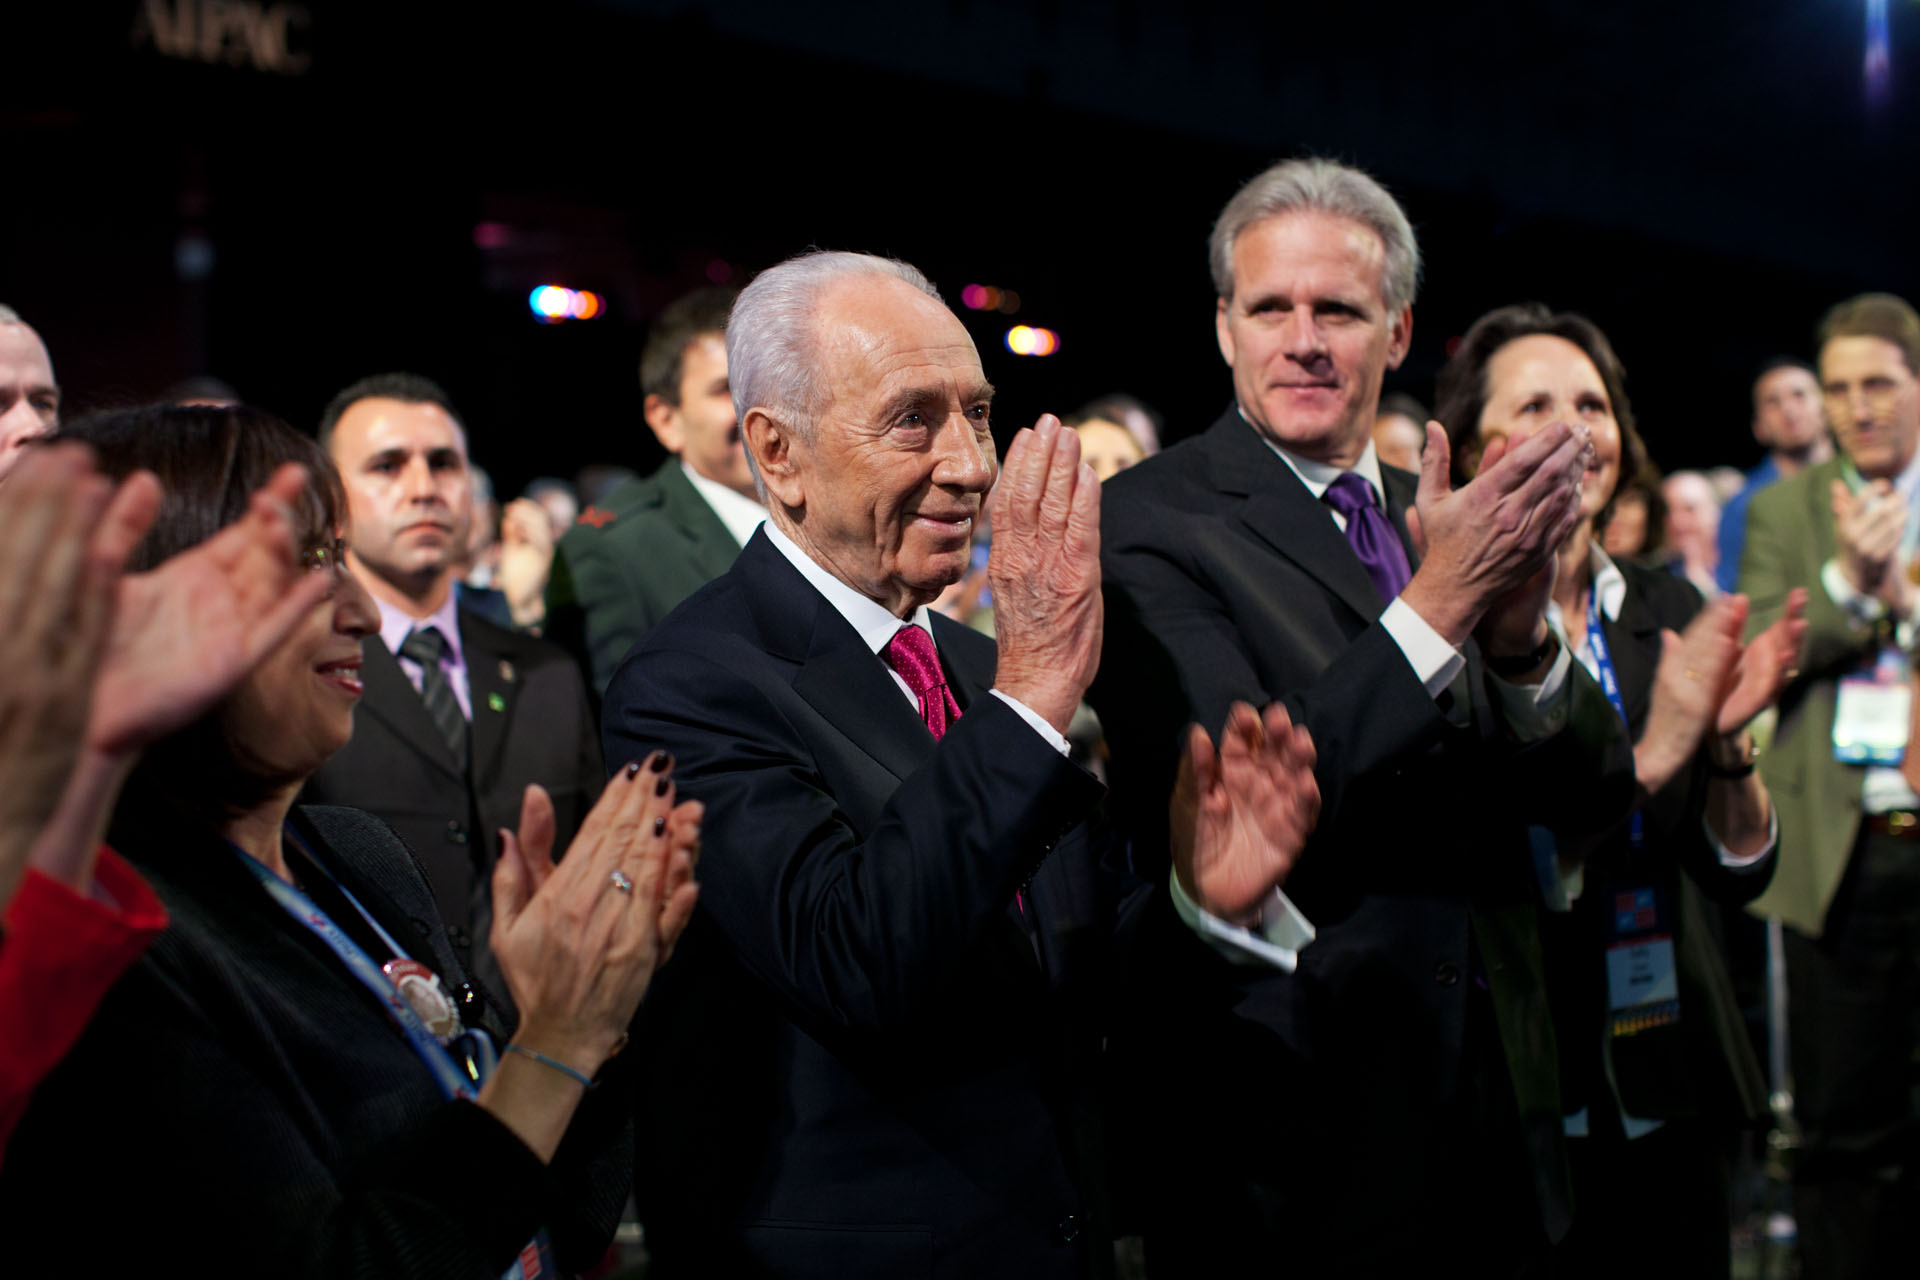 President of Israel Shimon Peres acknowledges recognition from President Barack Obama